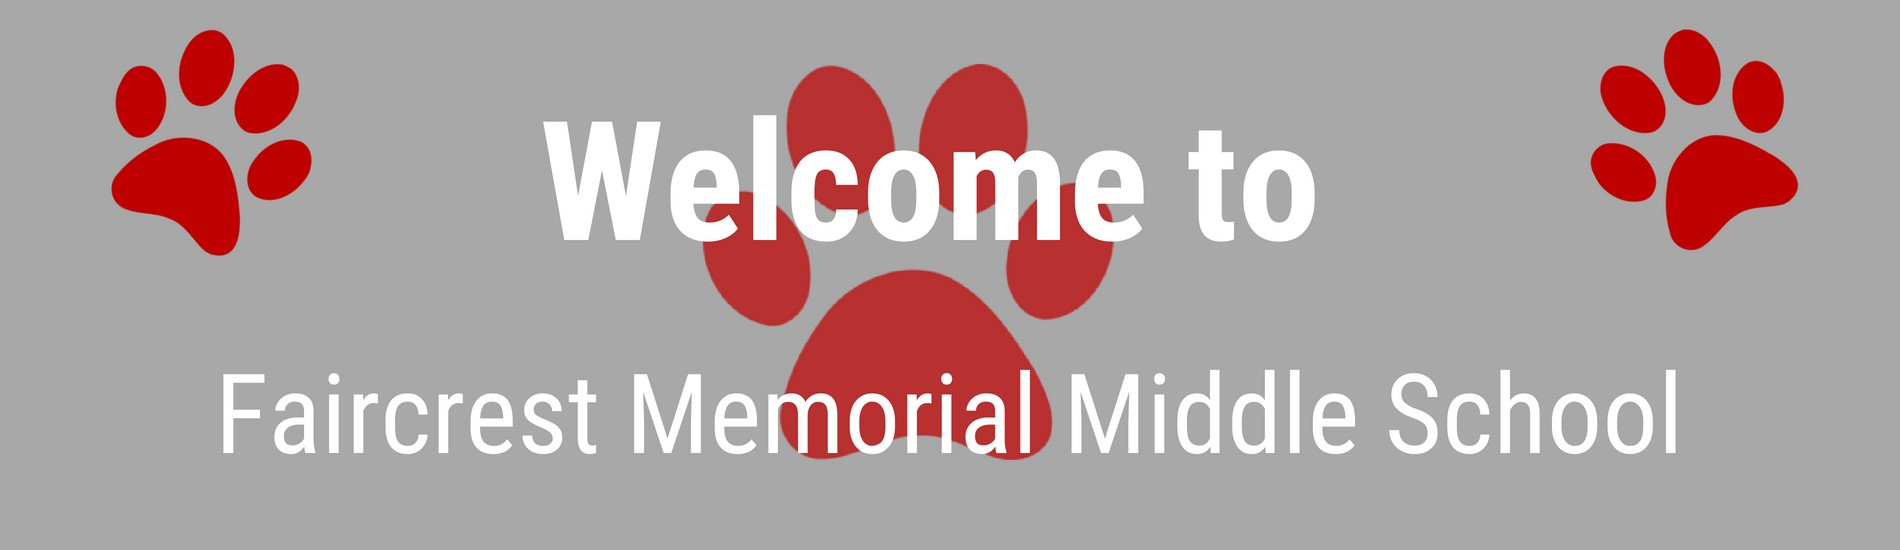 Welcome to Faircrest Memorial Middle School